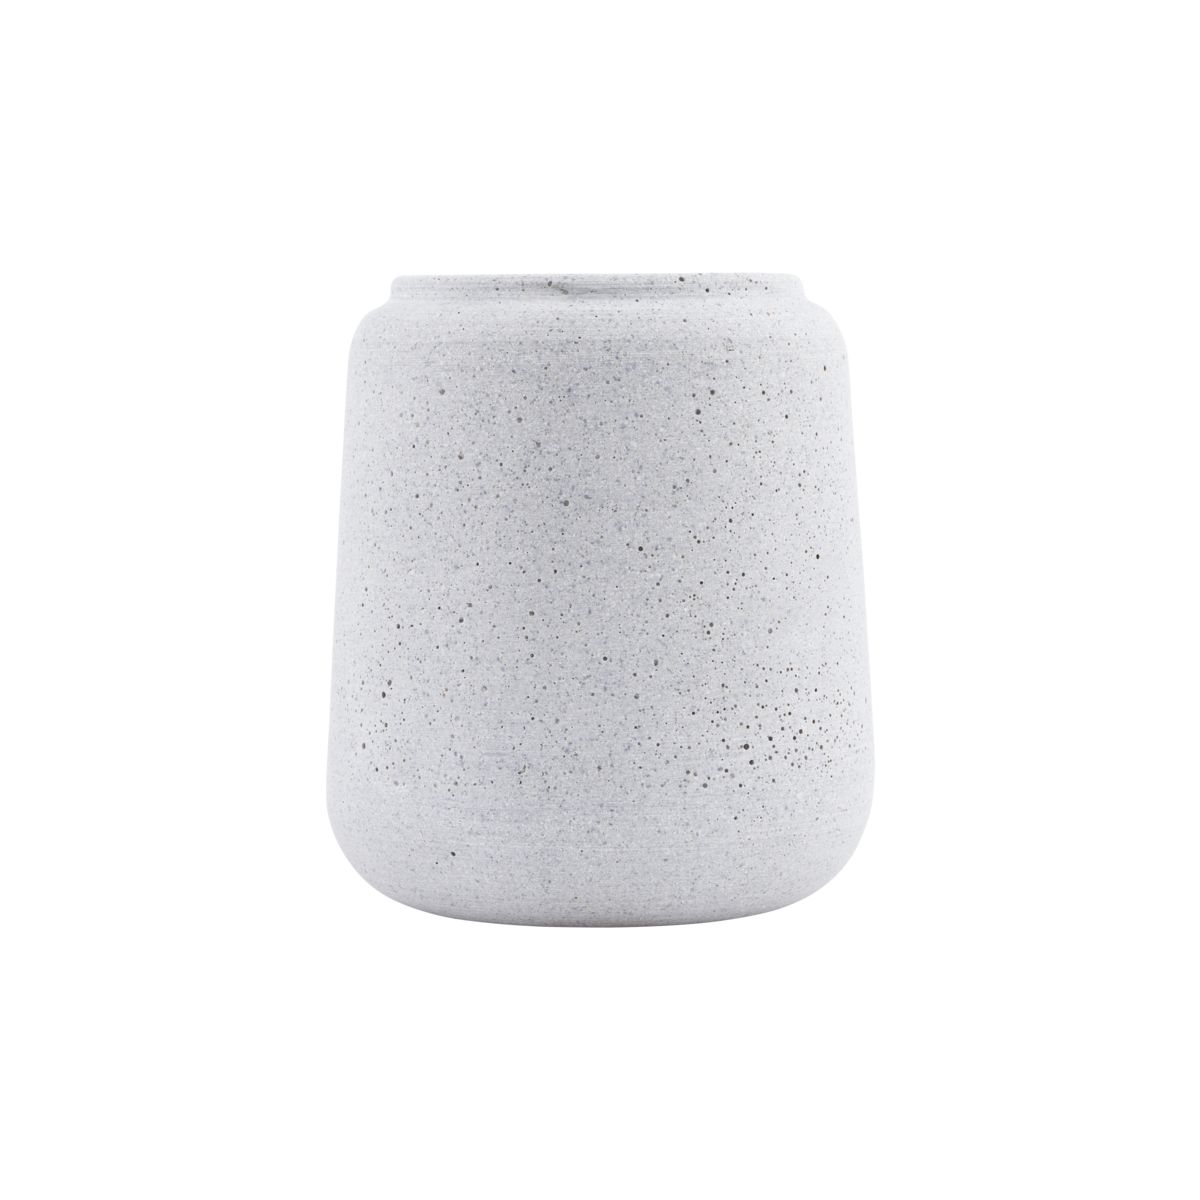 3.Concrete Planter Medium - Beautifully simple concrete planter. For storage, house plants or flowers. More sizes available.£25